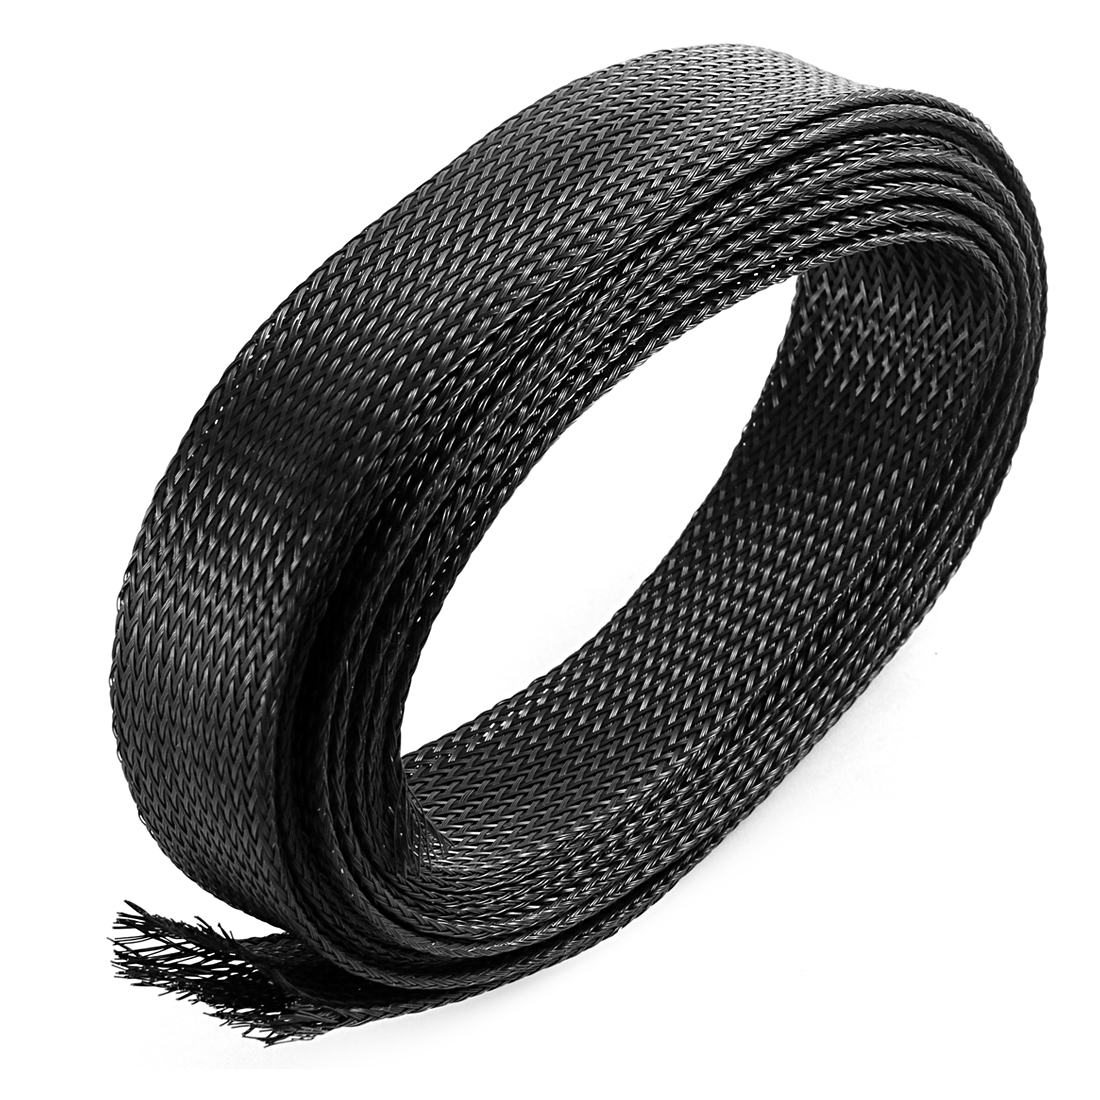 13Ft 3.9M Long 30mm Width Black Nylon Expandable Braided Sleeving Cable Cover Wire Protector